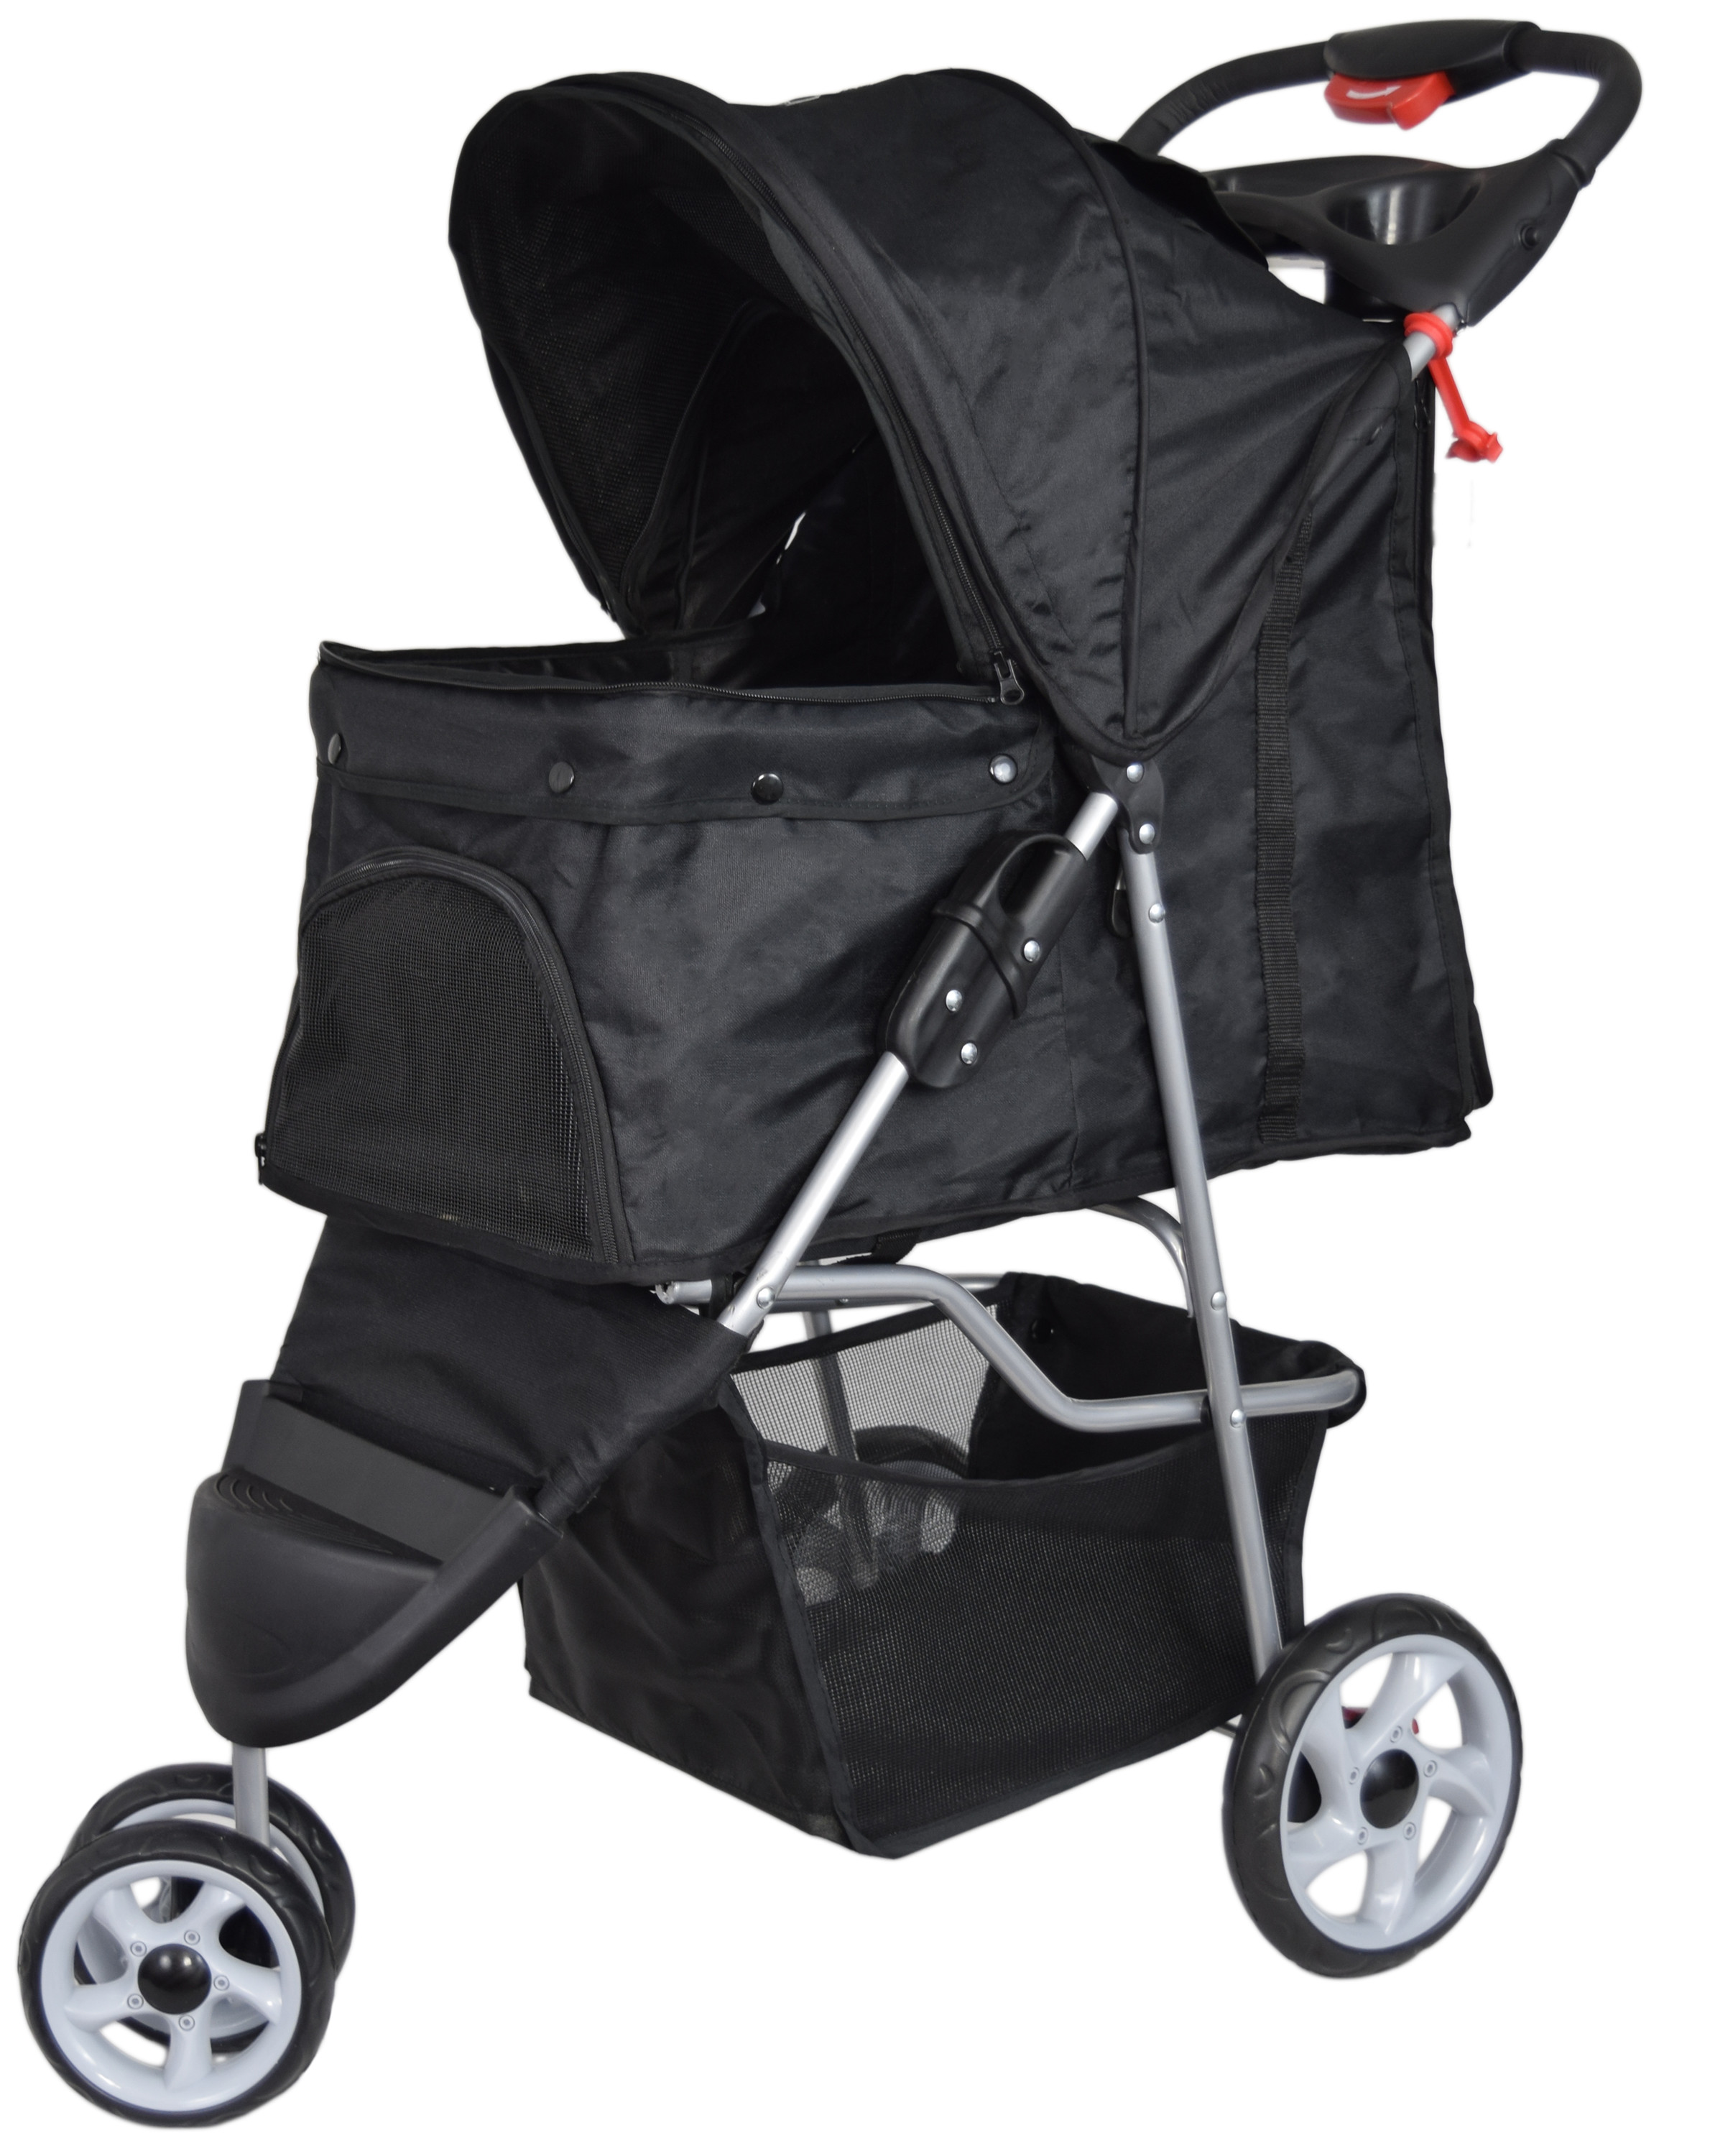 Komfort Buggy Book Von Peg Perego Vivo Three Wheel Pet Stroller Cat Dog Foldable Carrier Strolling Cart Black